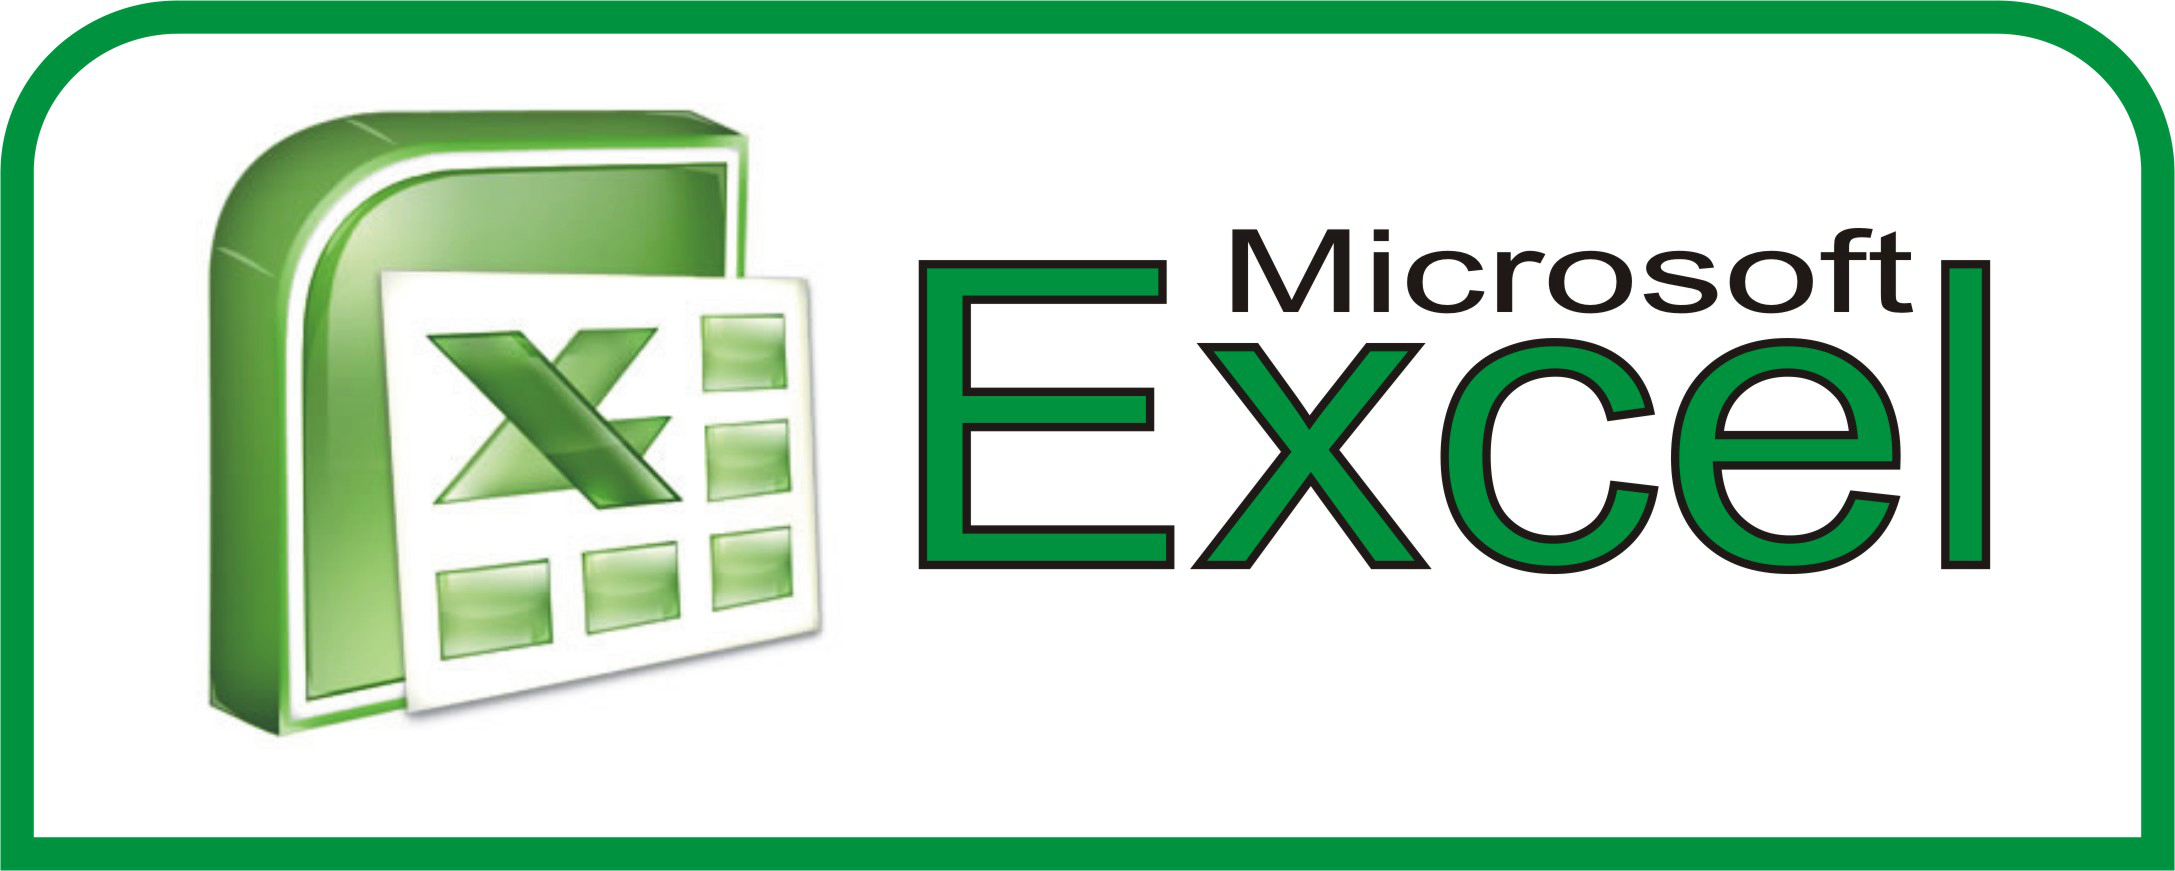 Ediblewildsus  Marvelous  Excel Shortcuts You Probably Didnt Know About  Techdissected With Excellent Excel Sensitivity Report Besides Excel Vba Convert To Number Furthermore Advanced Excel Classes Nyc With Amusing Show Zero In Excel Also How To Use Pv Function In Excel In Addition Create Pdf From Excel And Excel Power User Test As Well As Shortcut For Excel Additionally Beginning Excel From Techdissectedcom With Ediblewildsus  Excellent  Excel Shortcuts You Probably Didnt Know About  Techdissected With Amusing Excel Sensitivity Report Besides Excel Vba Convert To Number Furthermore Advanced Excel Classes Nyc And Marvelous Show Zero In Excel Also How To Use Pv Function In Excel In Addition Create Pdf From Excel From Techdissectedcom